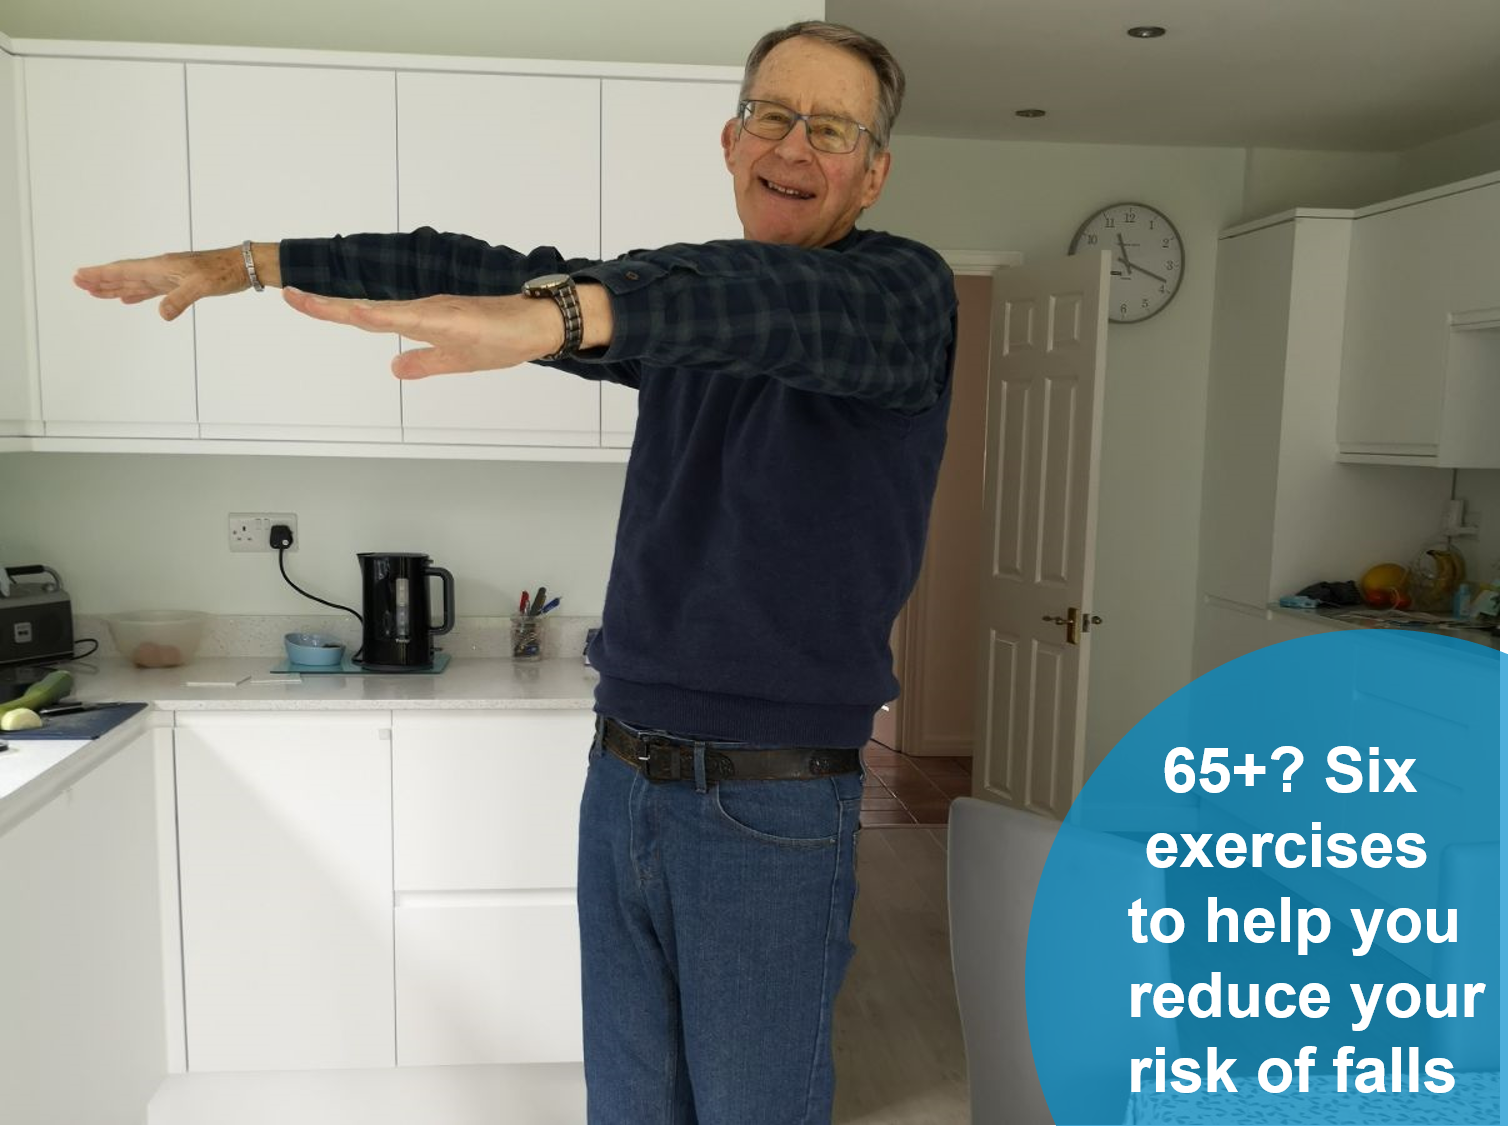 older man doing workout in kitchen plus link to 65+ balance P D F